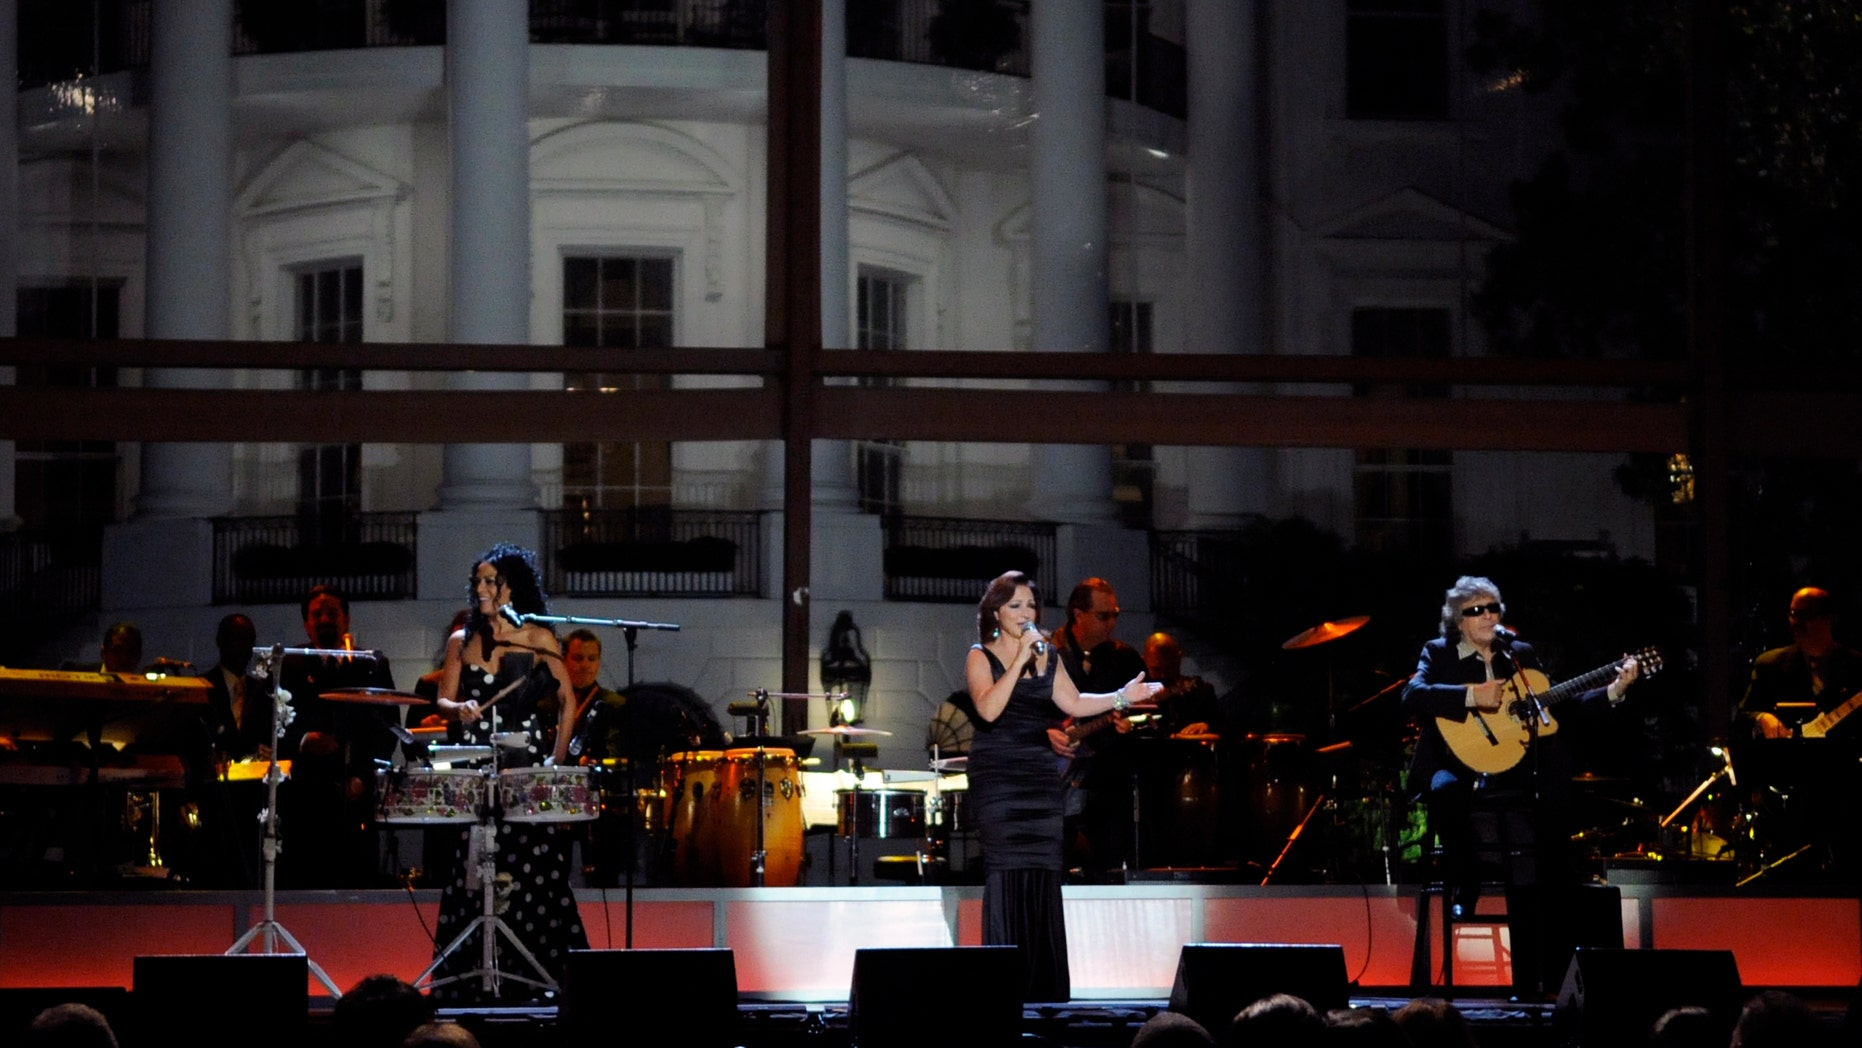 """WASHINGTON - OCTOBER 13:  (L-R) Sheila E., Gloria Estefan and Jose Feliciano perform at the White House music series """"Fiesta Latina"""" on the South Lawn of the White House October 13, 2009  in Washington, DC.  Salsa and Spanish classical music was featured.  (Photo by Alexis C. Glenn-Pool/Getty Images)"""